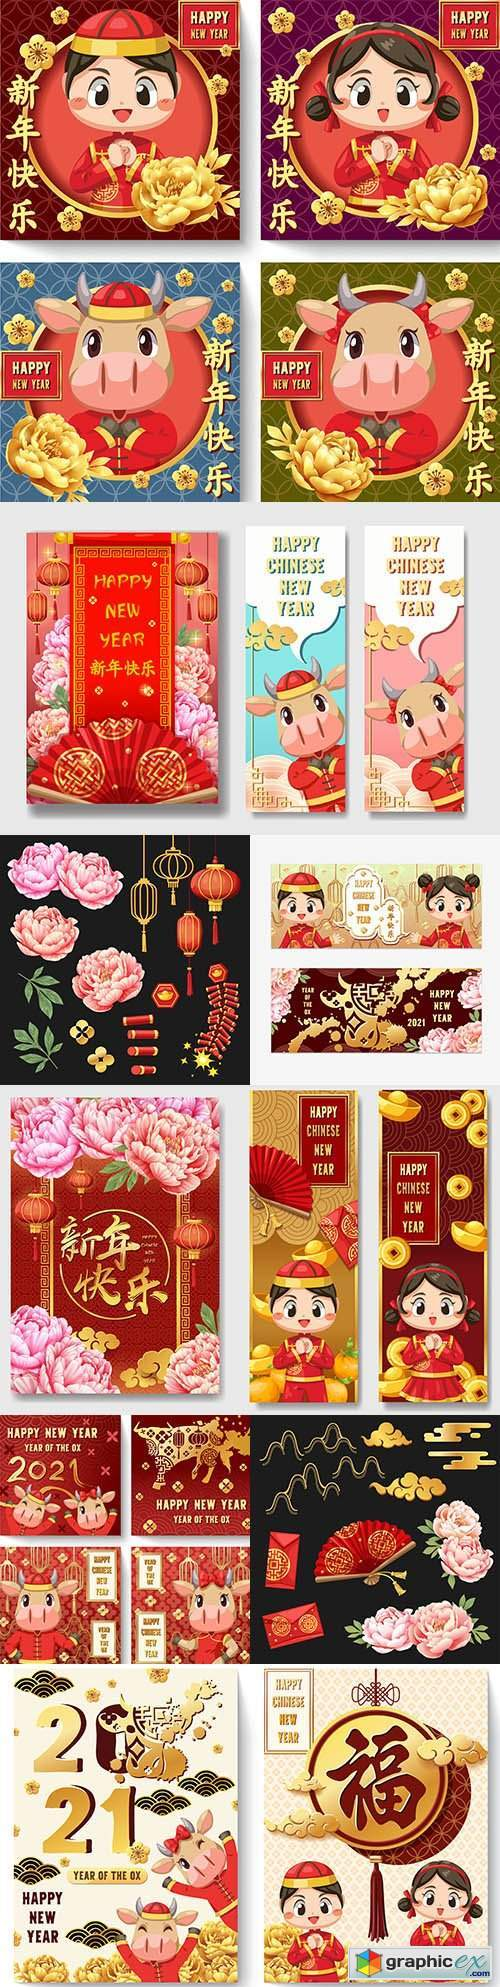 Happy Chinese New Year card and banners with elements